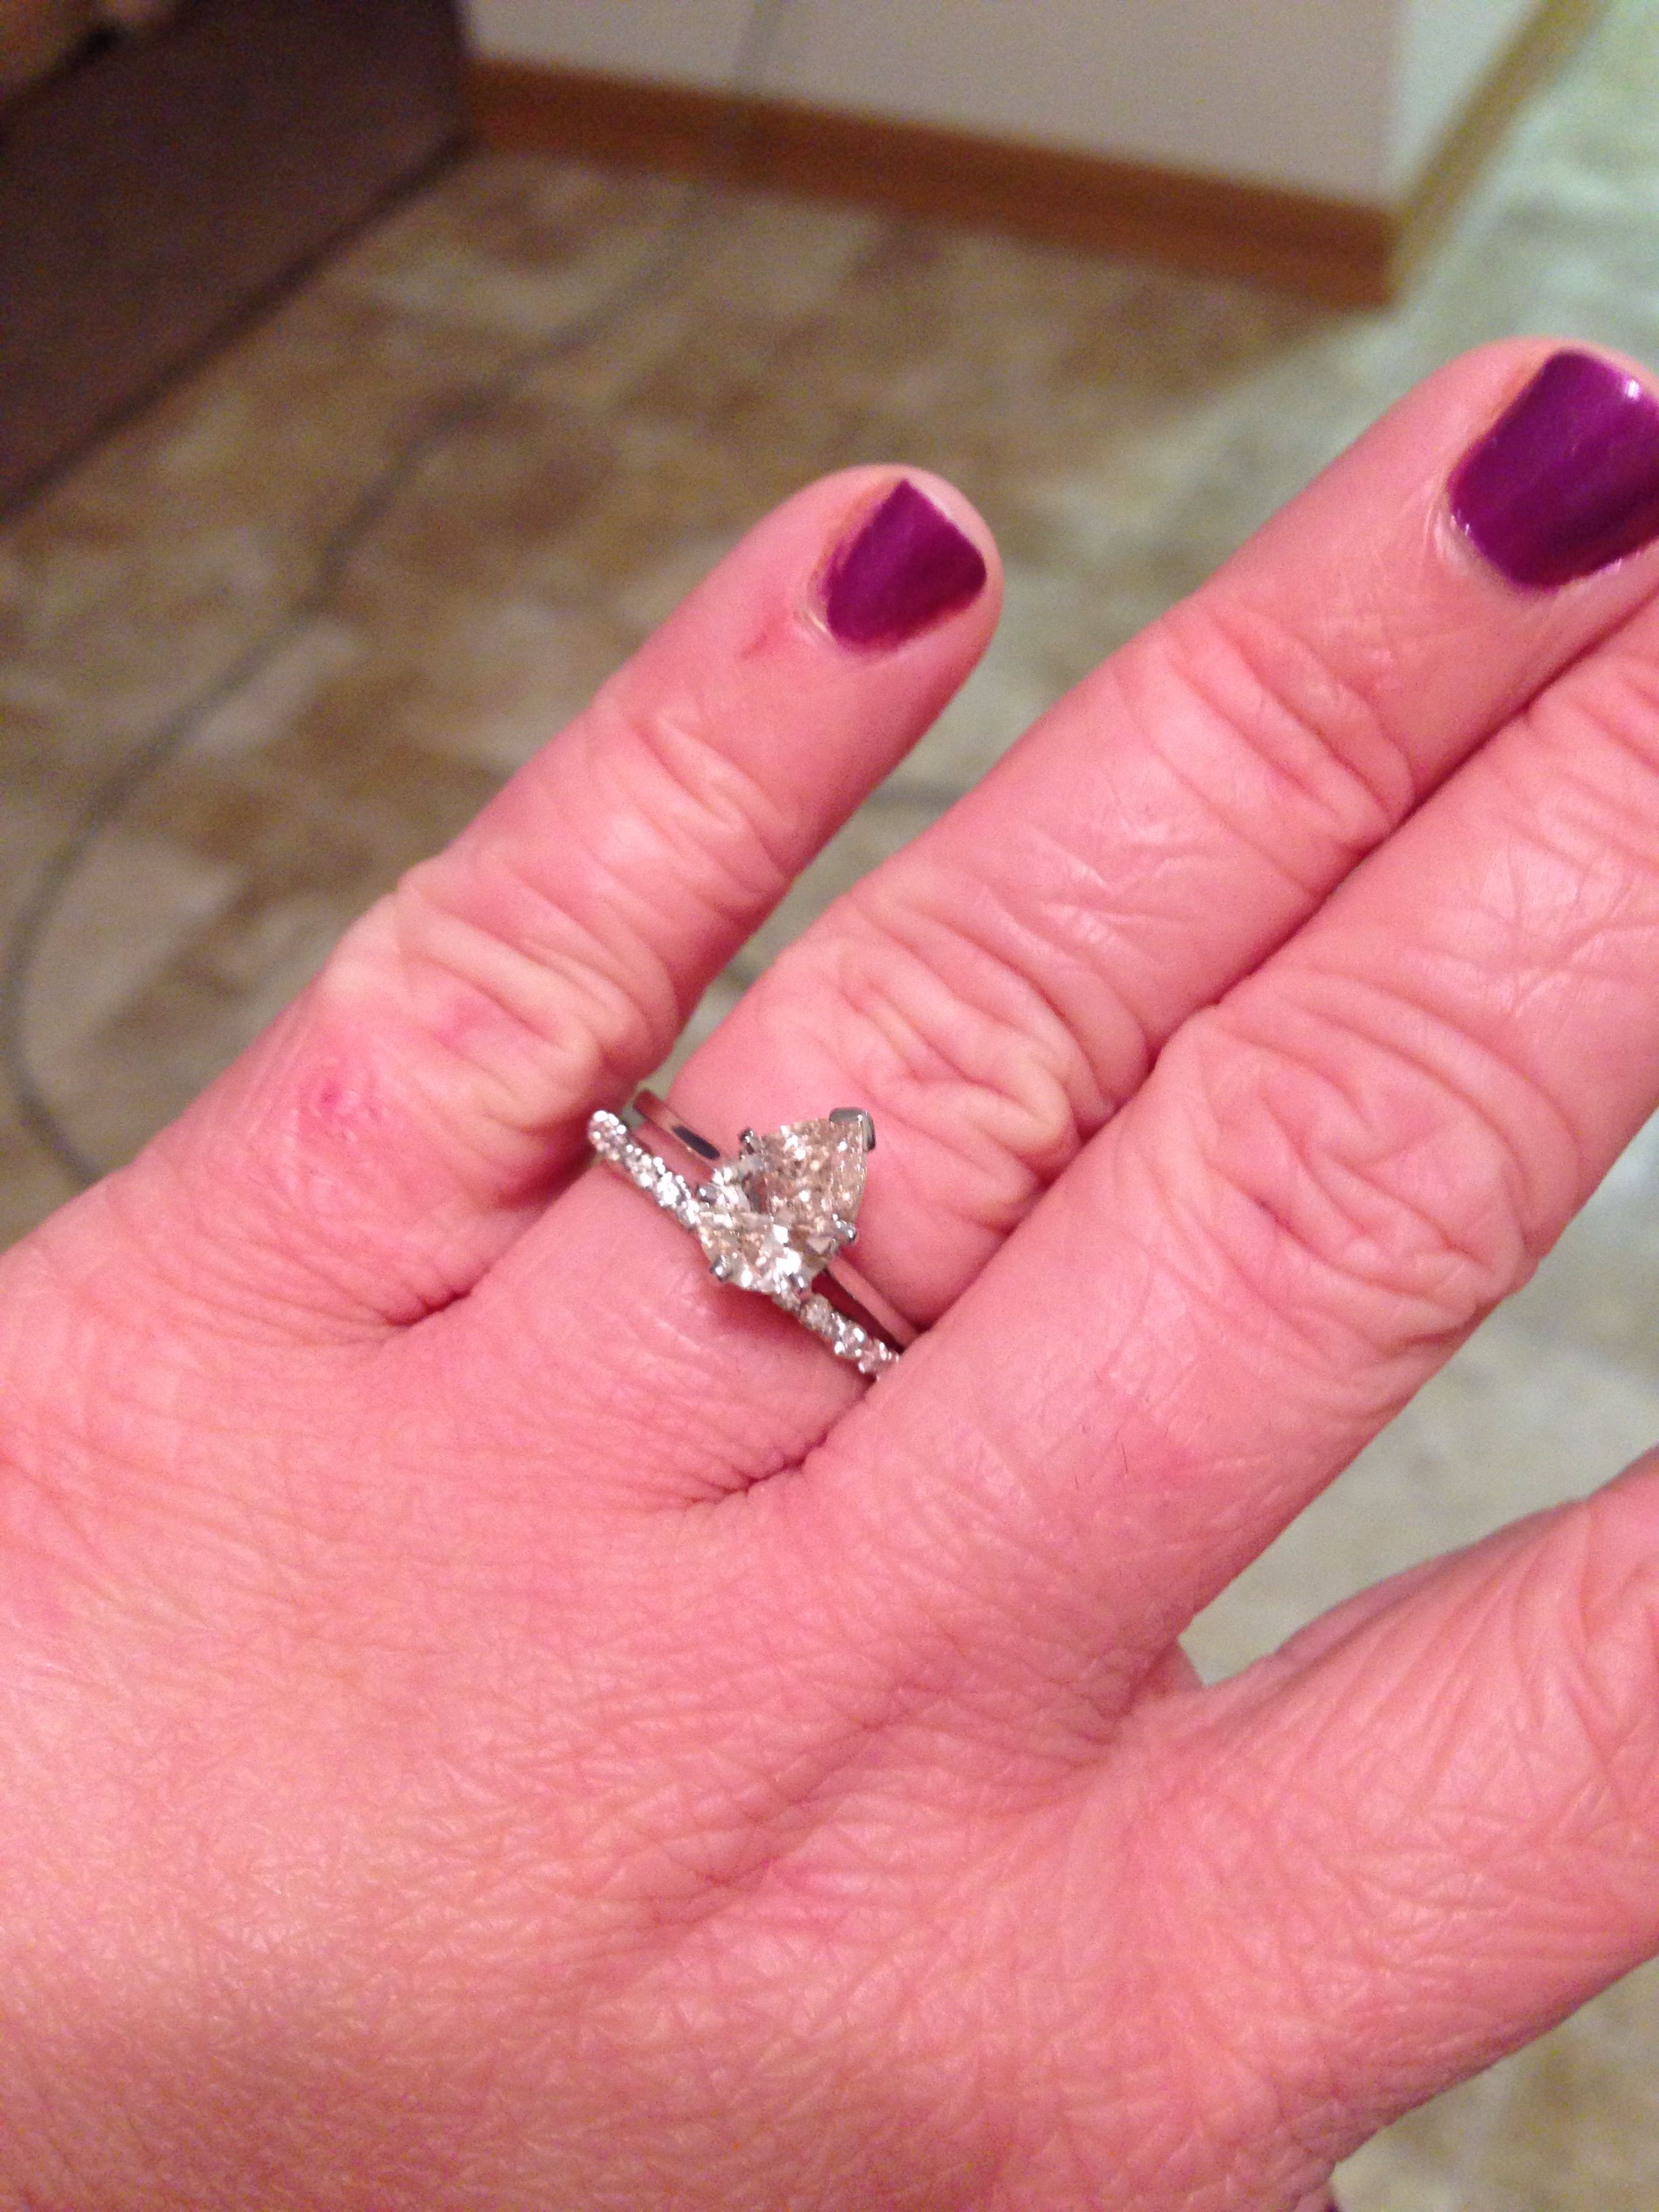 My Beautiful 13 Carat Pear Diamond Solitaire With My Pave